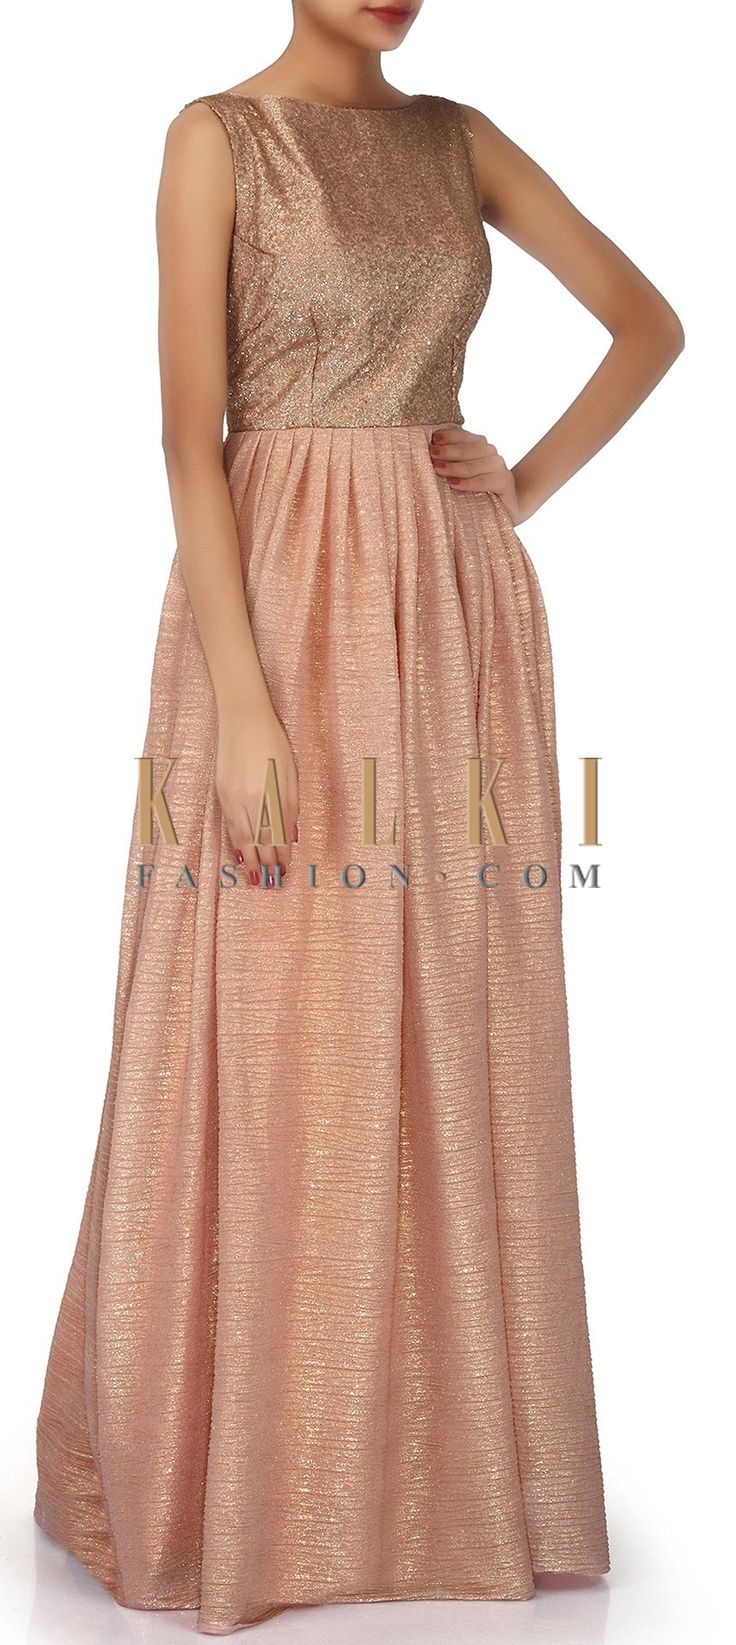 Buy Online from the link below. We ship worldwide (Free Shipping over US$100). Product SKU - 304498. Product Link - http://www.kalkifashion.com/peach-suit-adorn-in-sequin-bodice-only-on-kalki.html